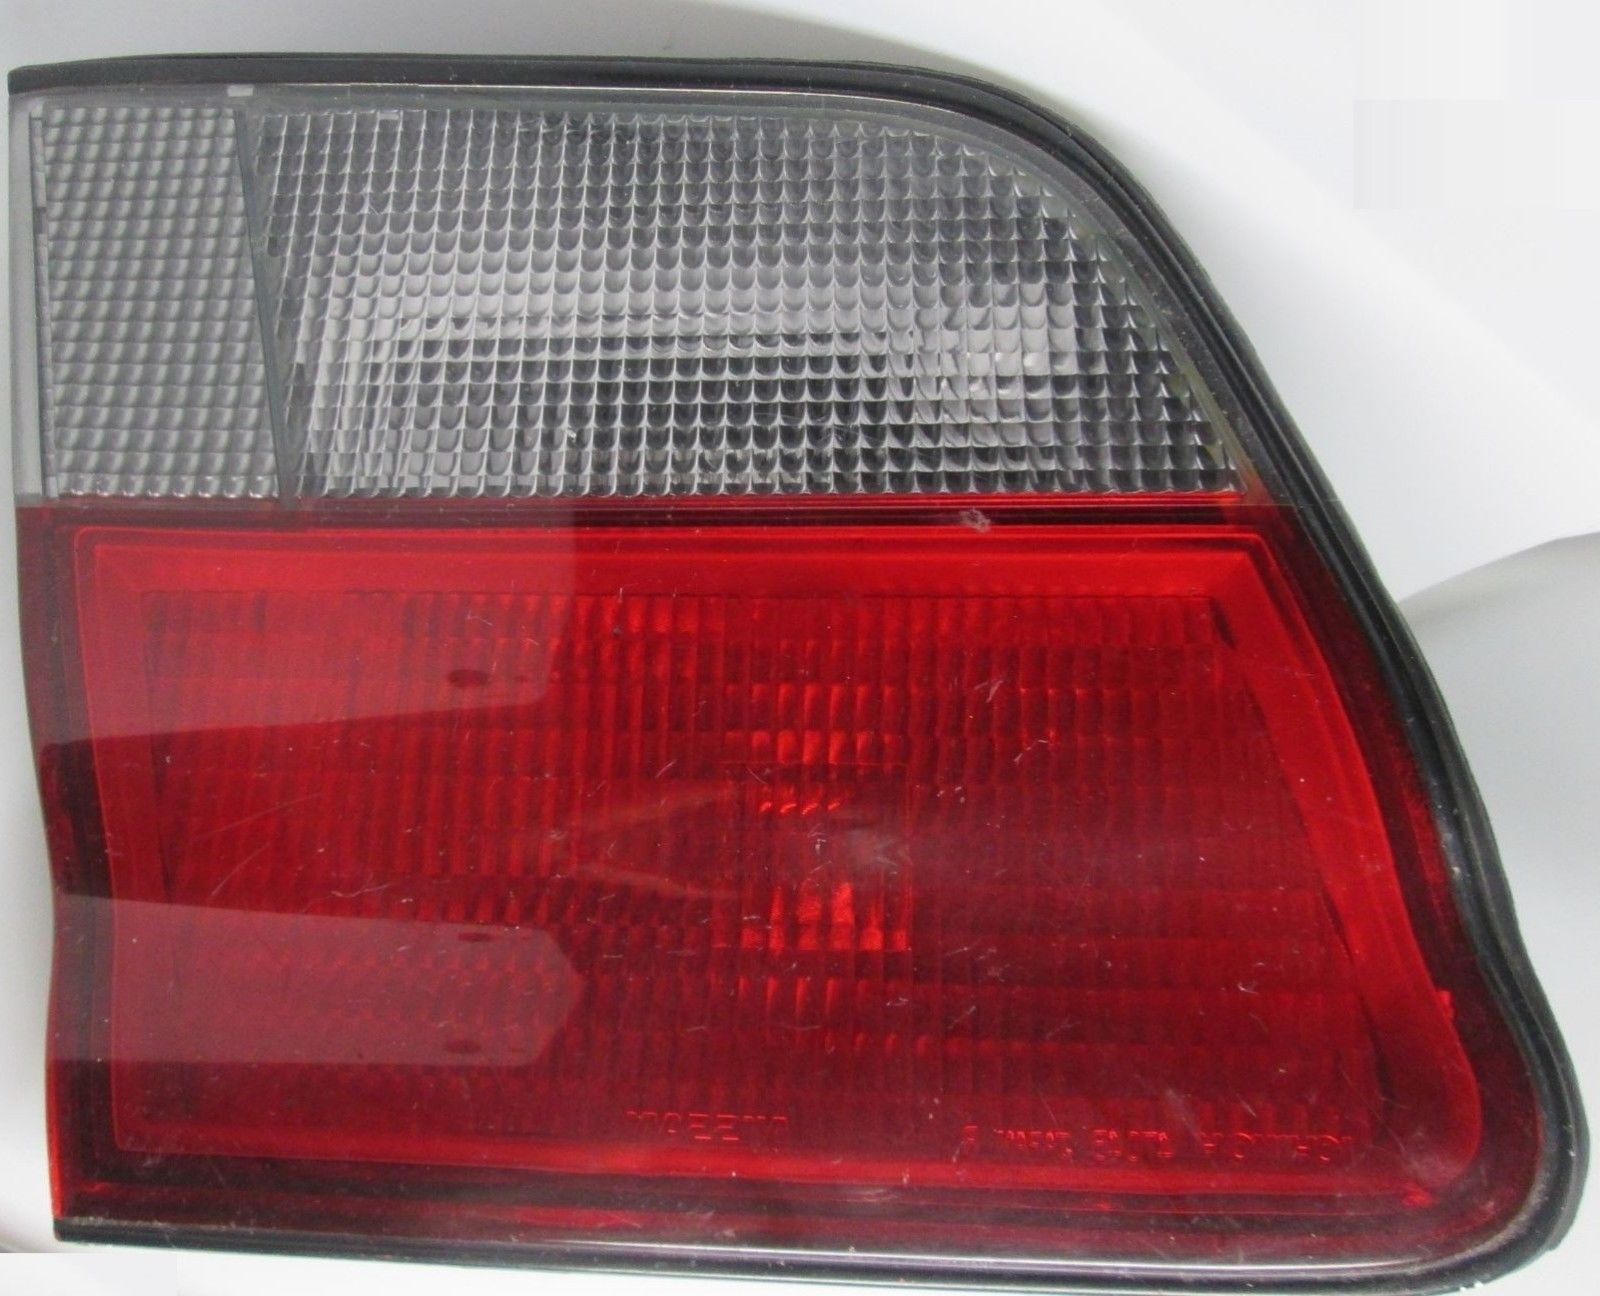 Dorman Taillight Taillamp Circuit Board Driver Side Left Rear for 97-05 Malibu